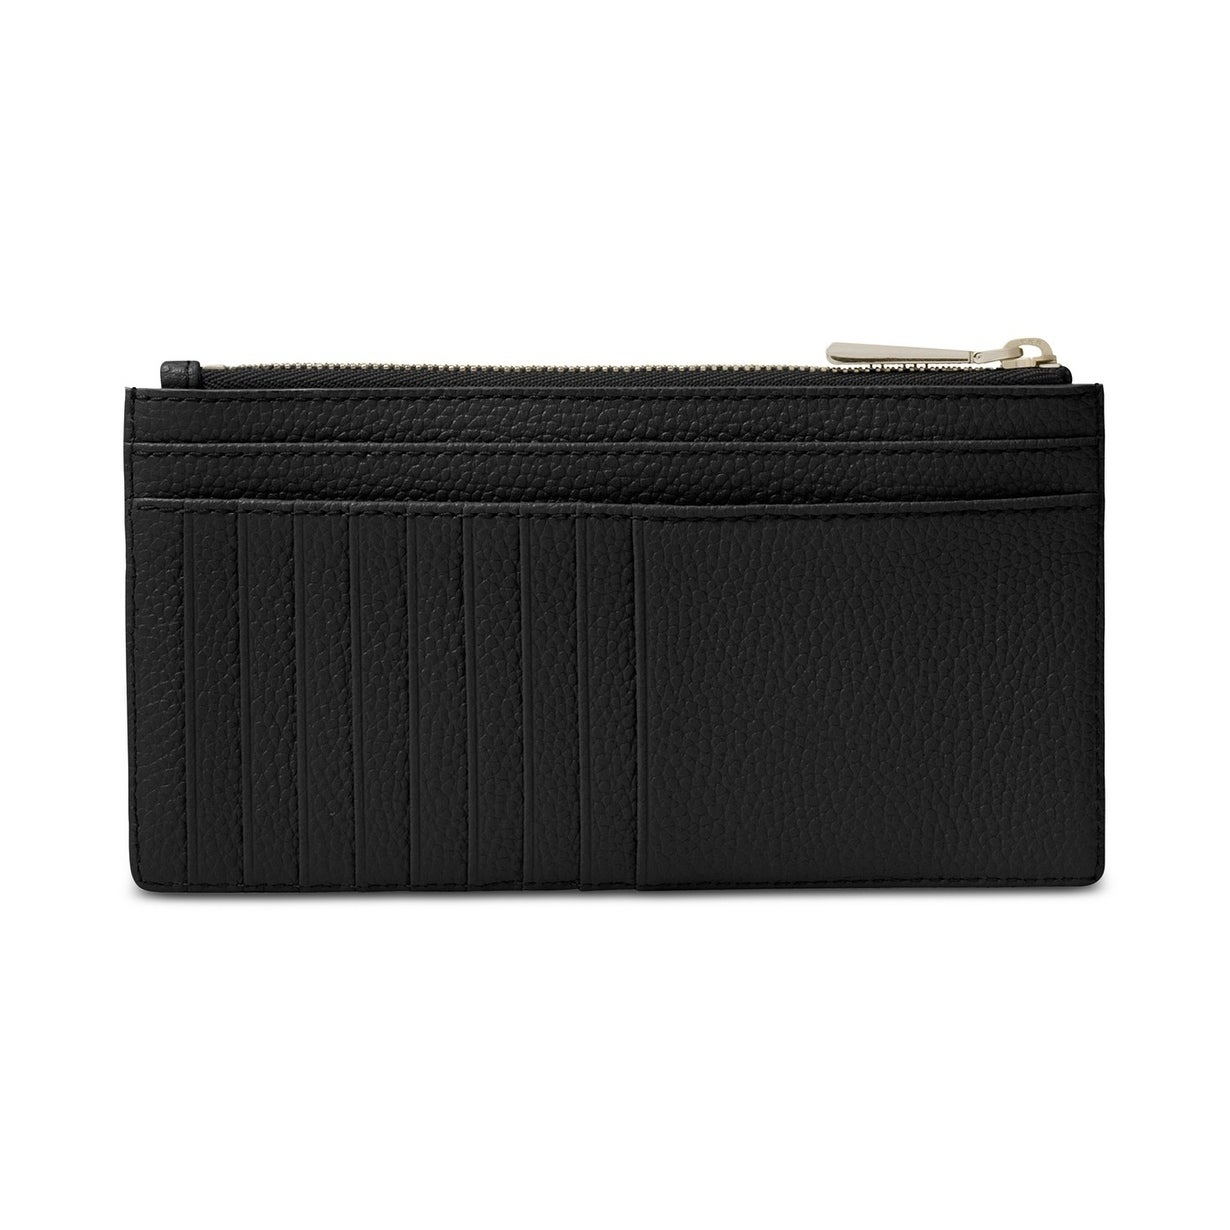 ea15aff4bdb2 Shop MICHAEL Michael Kors Large Slim Card Case - L - On Sale - Free  Shipping Today - Overstock - 22392113